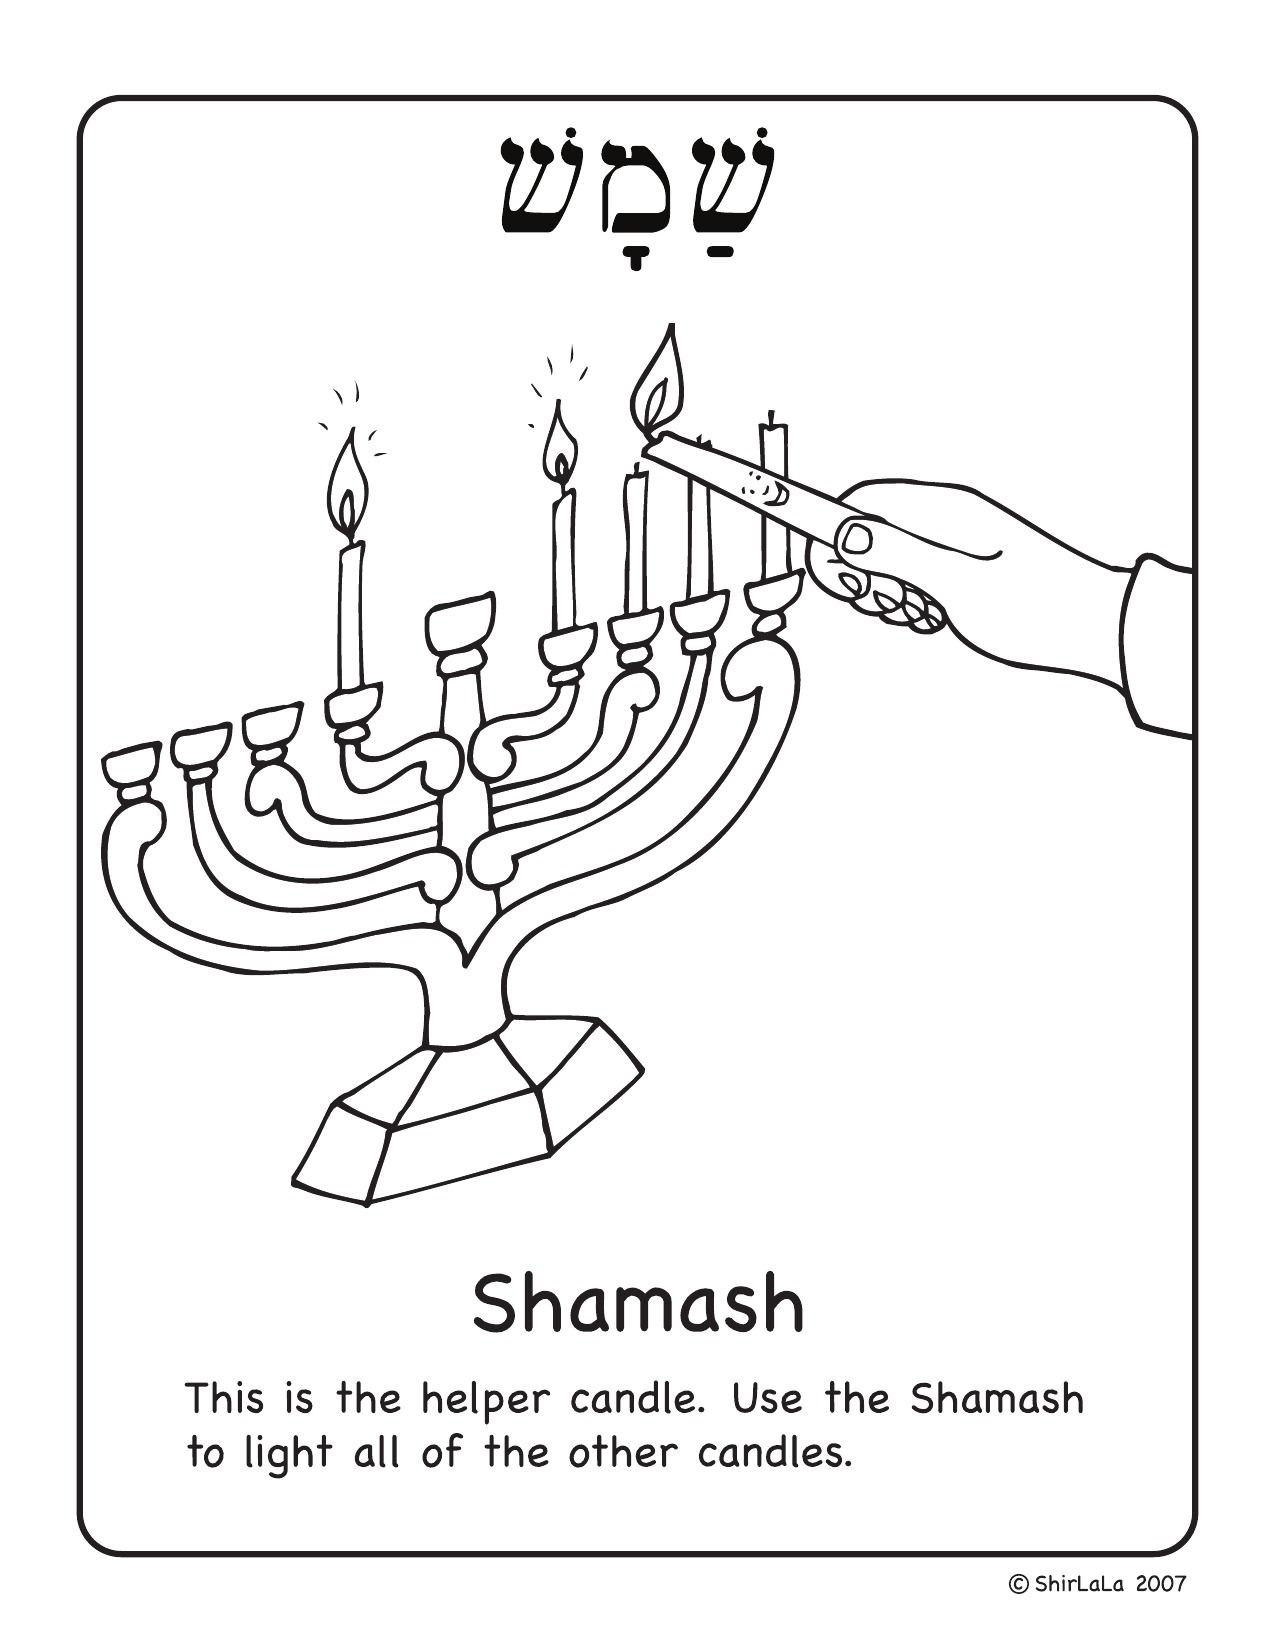 Shamash Helper Candle Hebrew Coloring Page For Chanukah On Blog